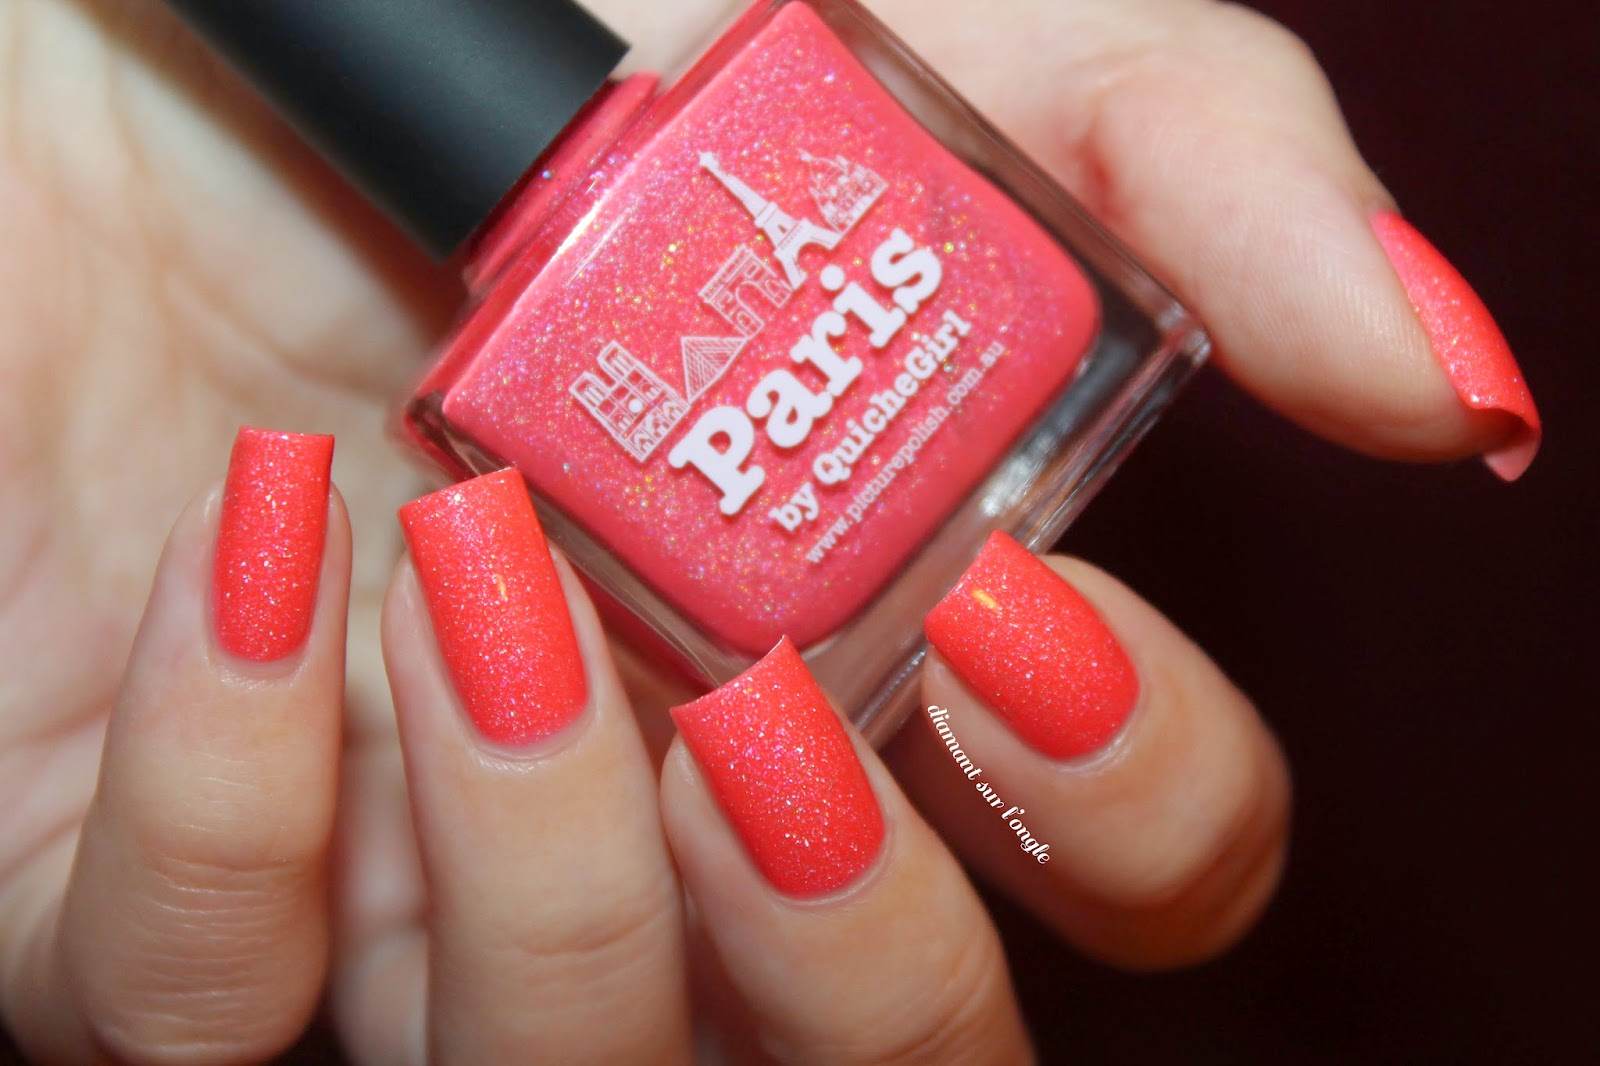 """Swatch of the nail polish """"Paris"""" from Picture Polish"""